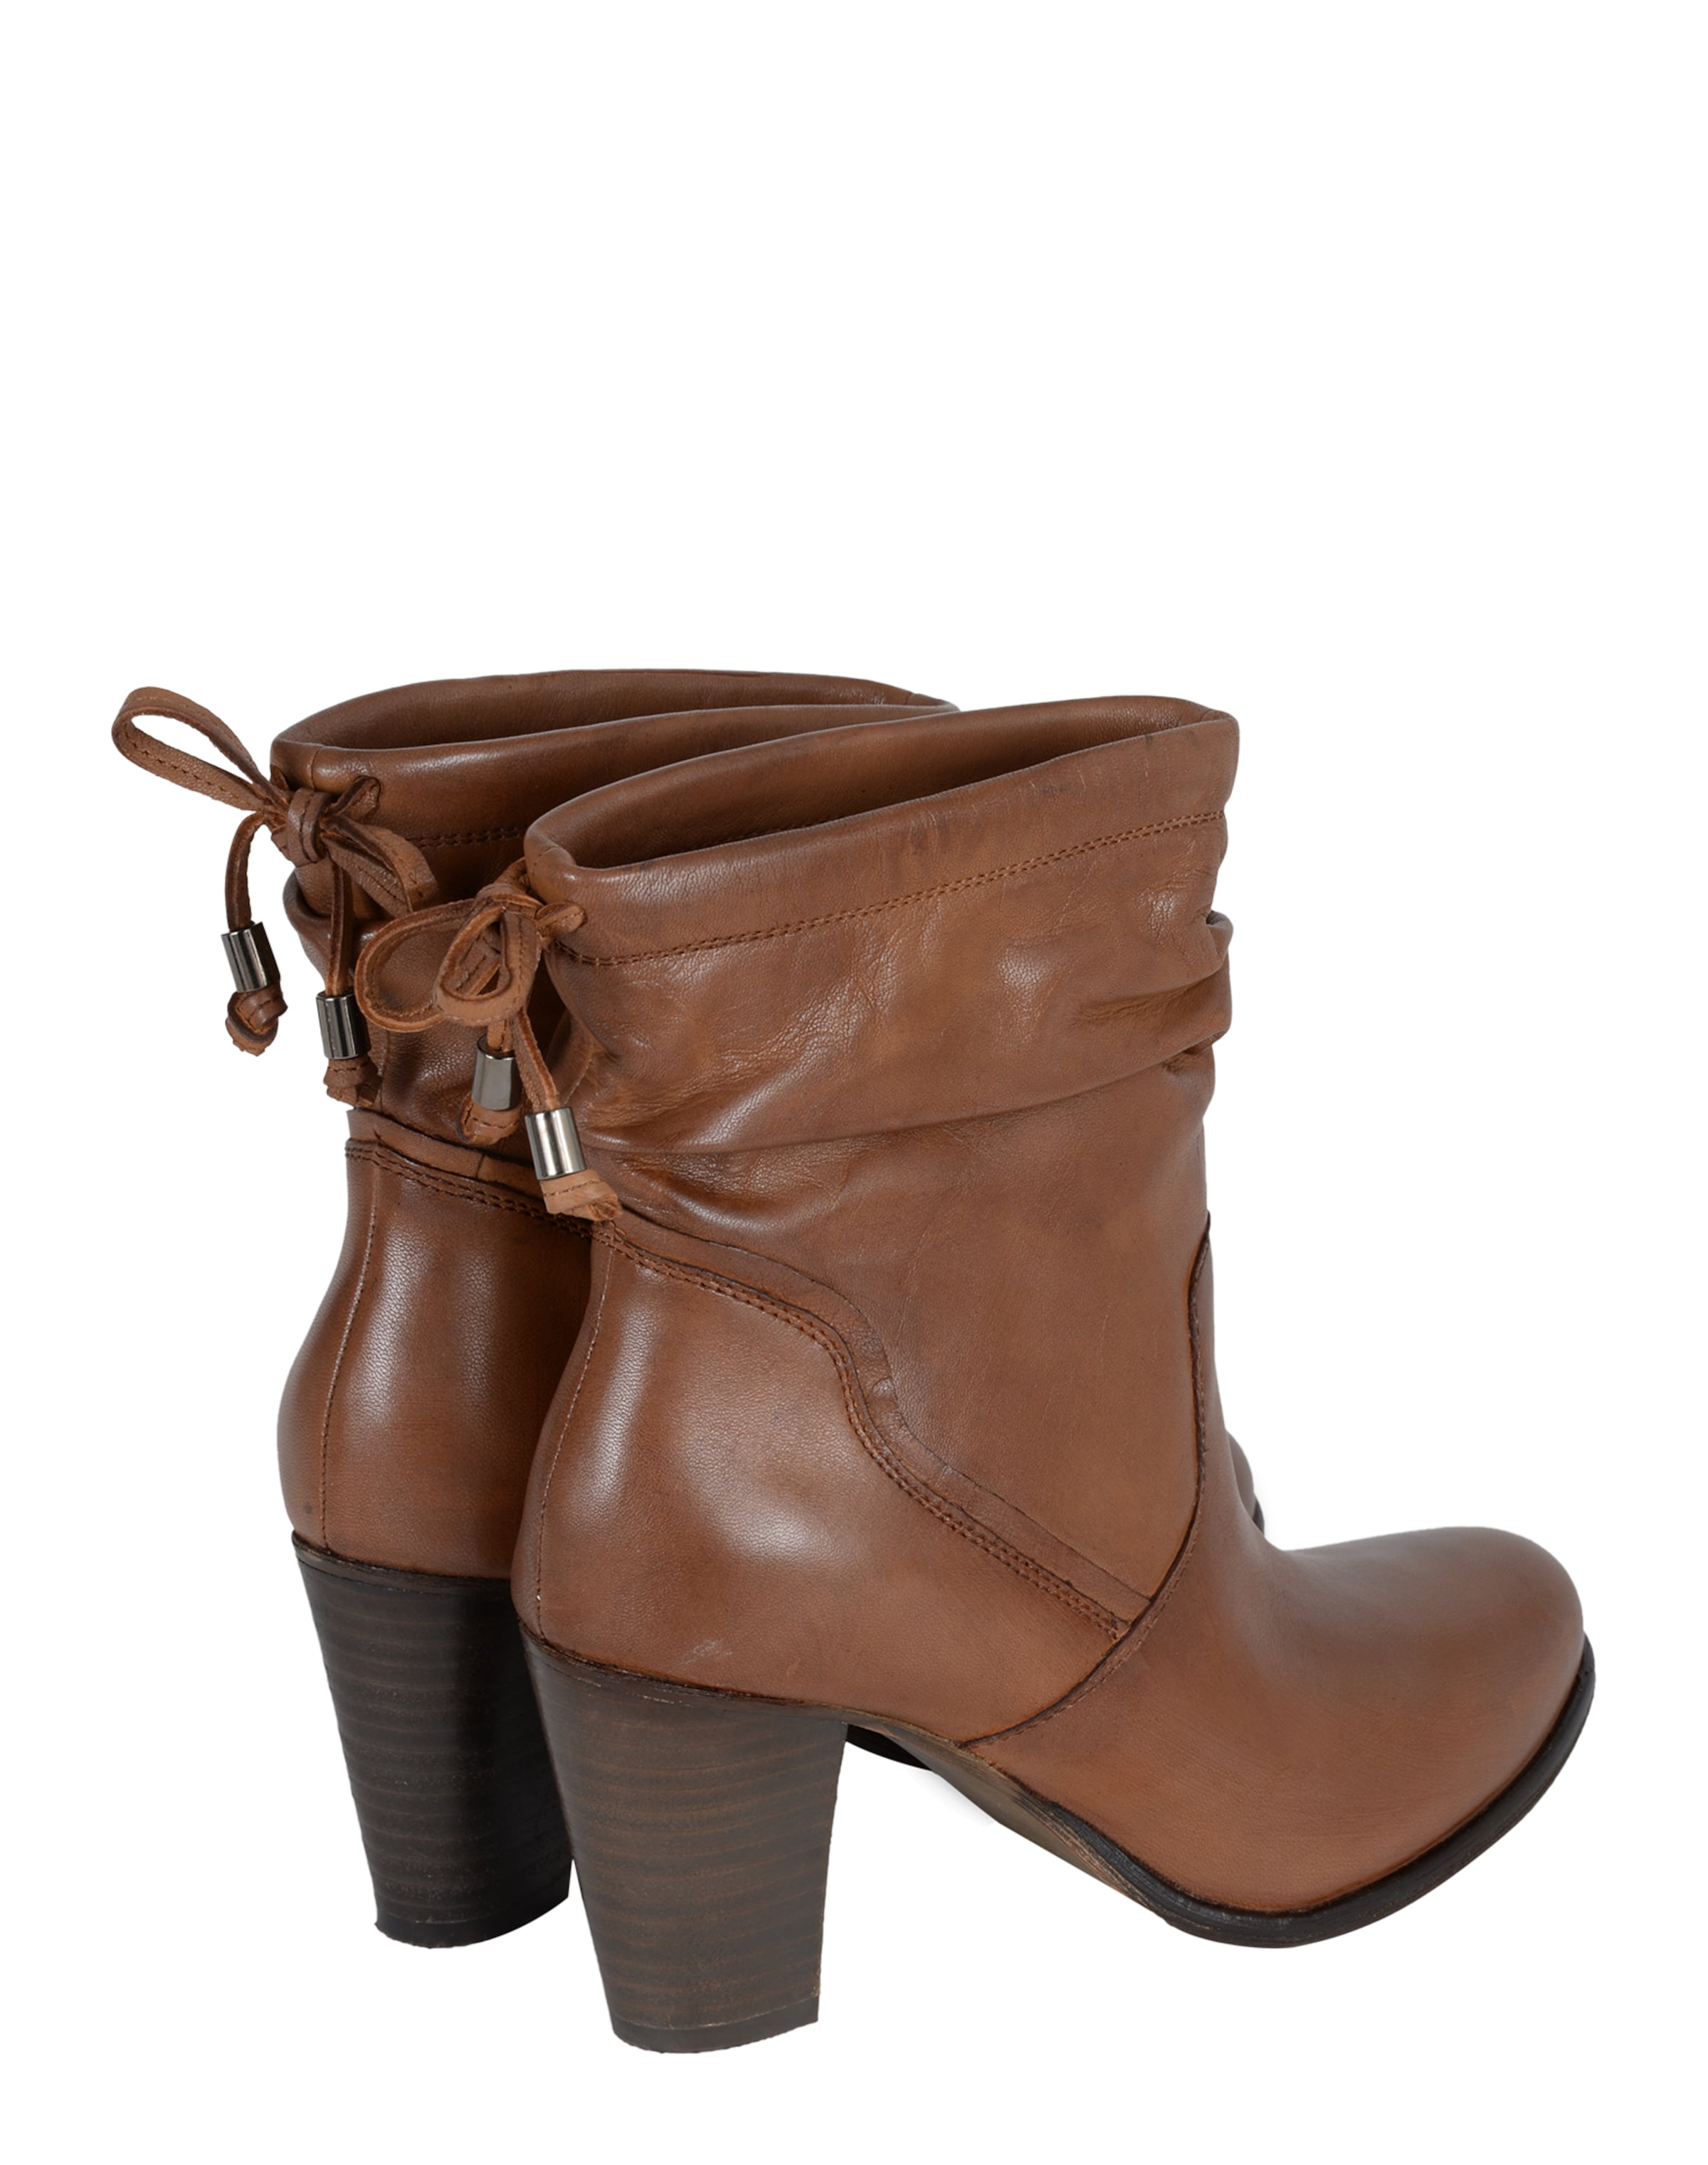 Ankle Boots Aus Spm Leder BraunCognac 'giovana' In H9YW2IED